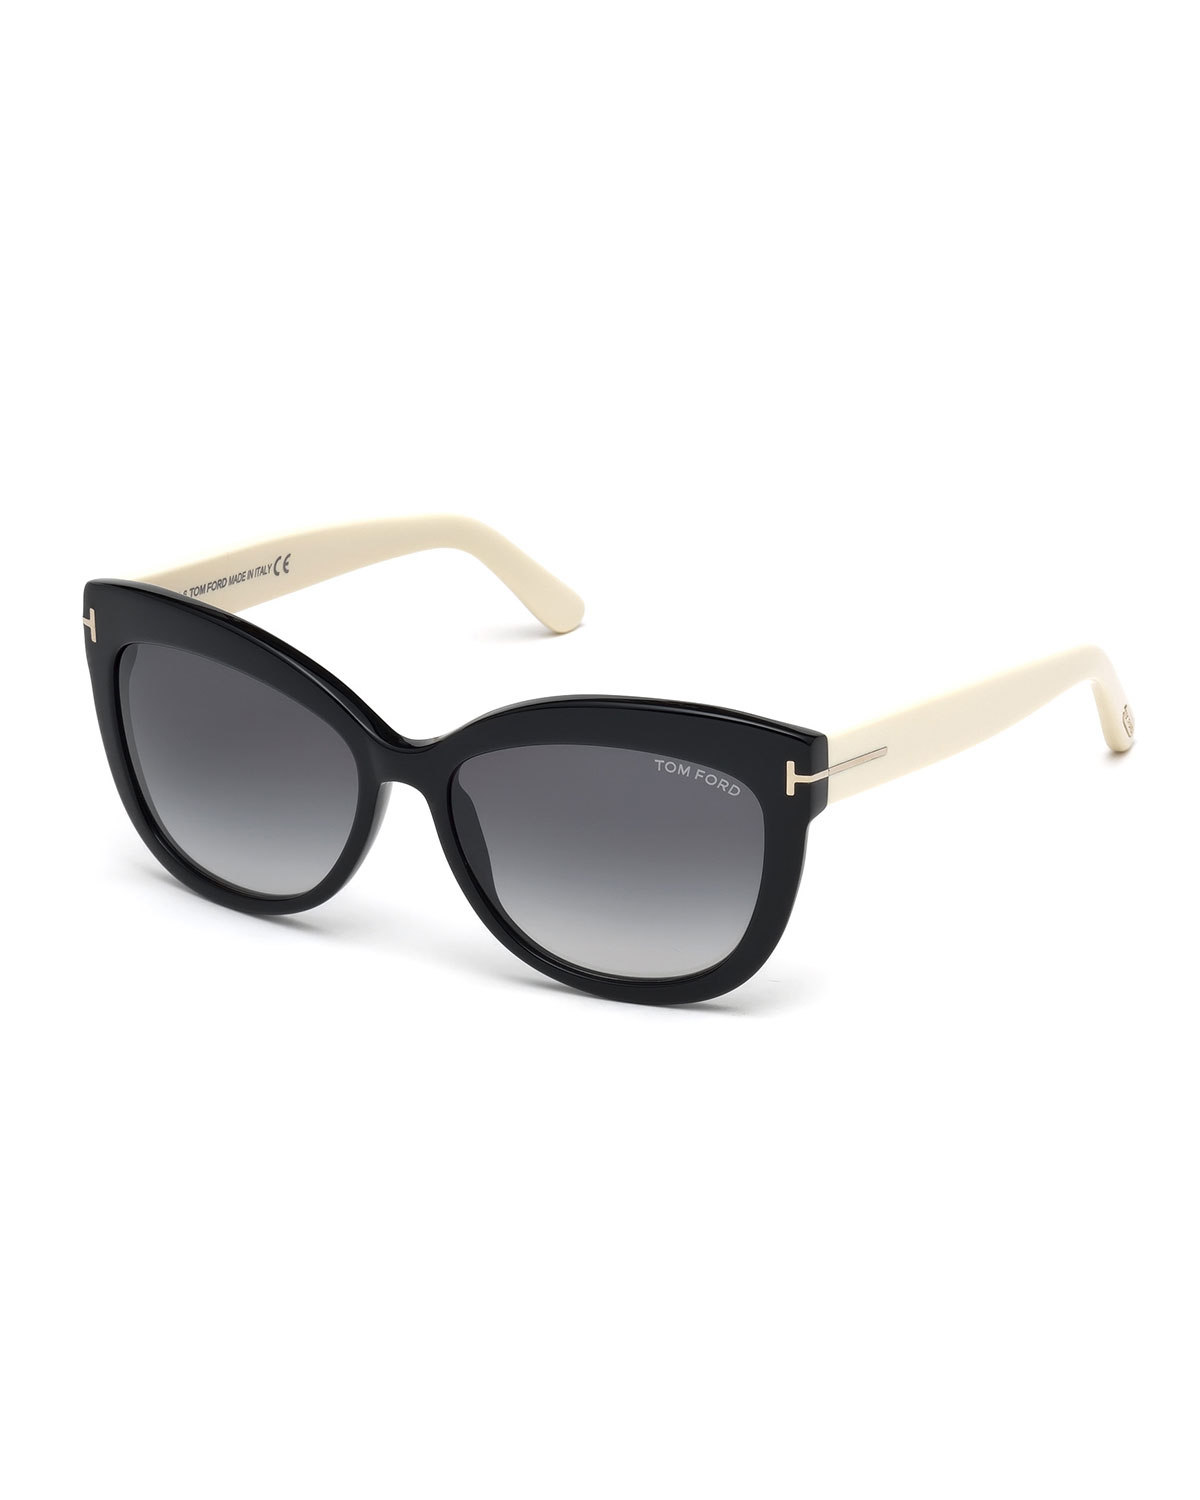 c2fa52e0ae Tom Ford Black Sunglasses